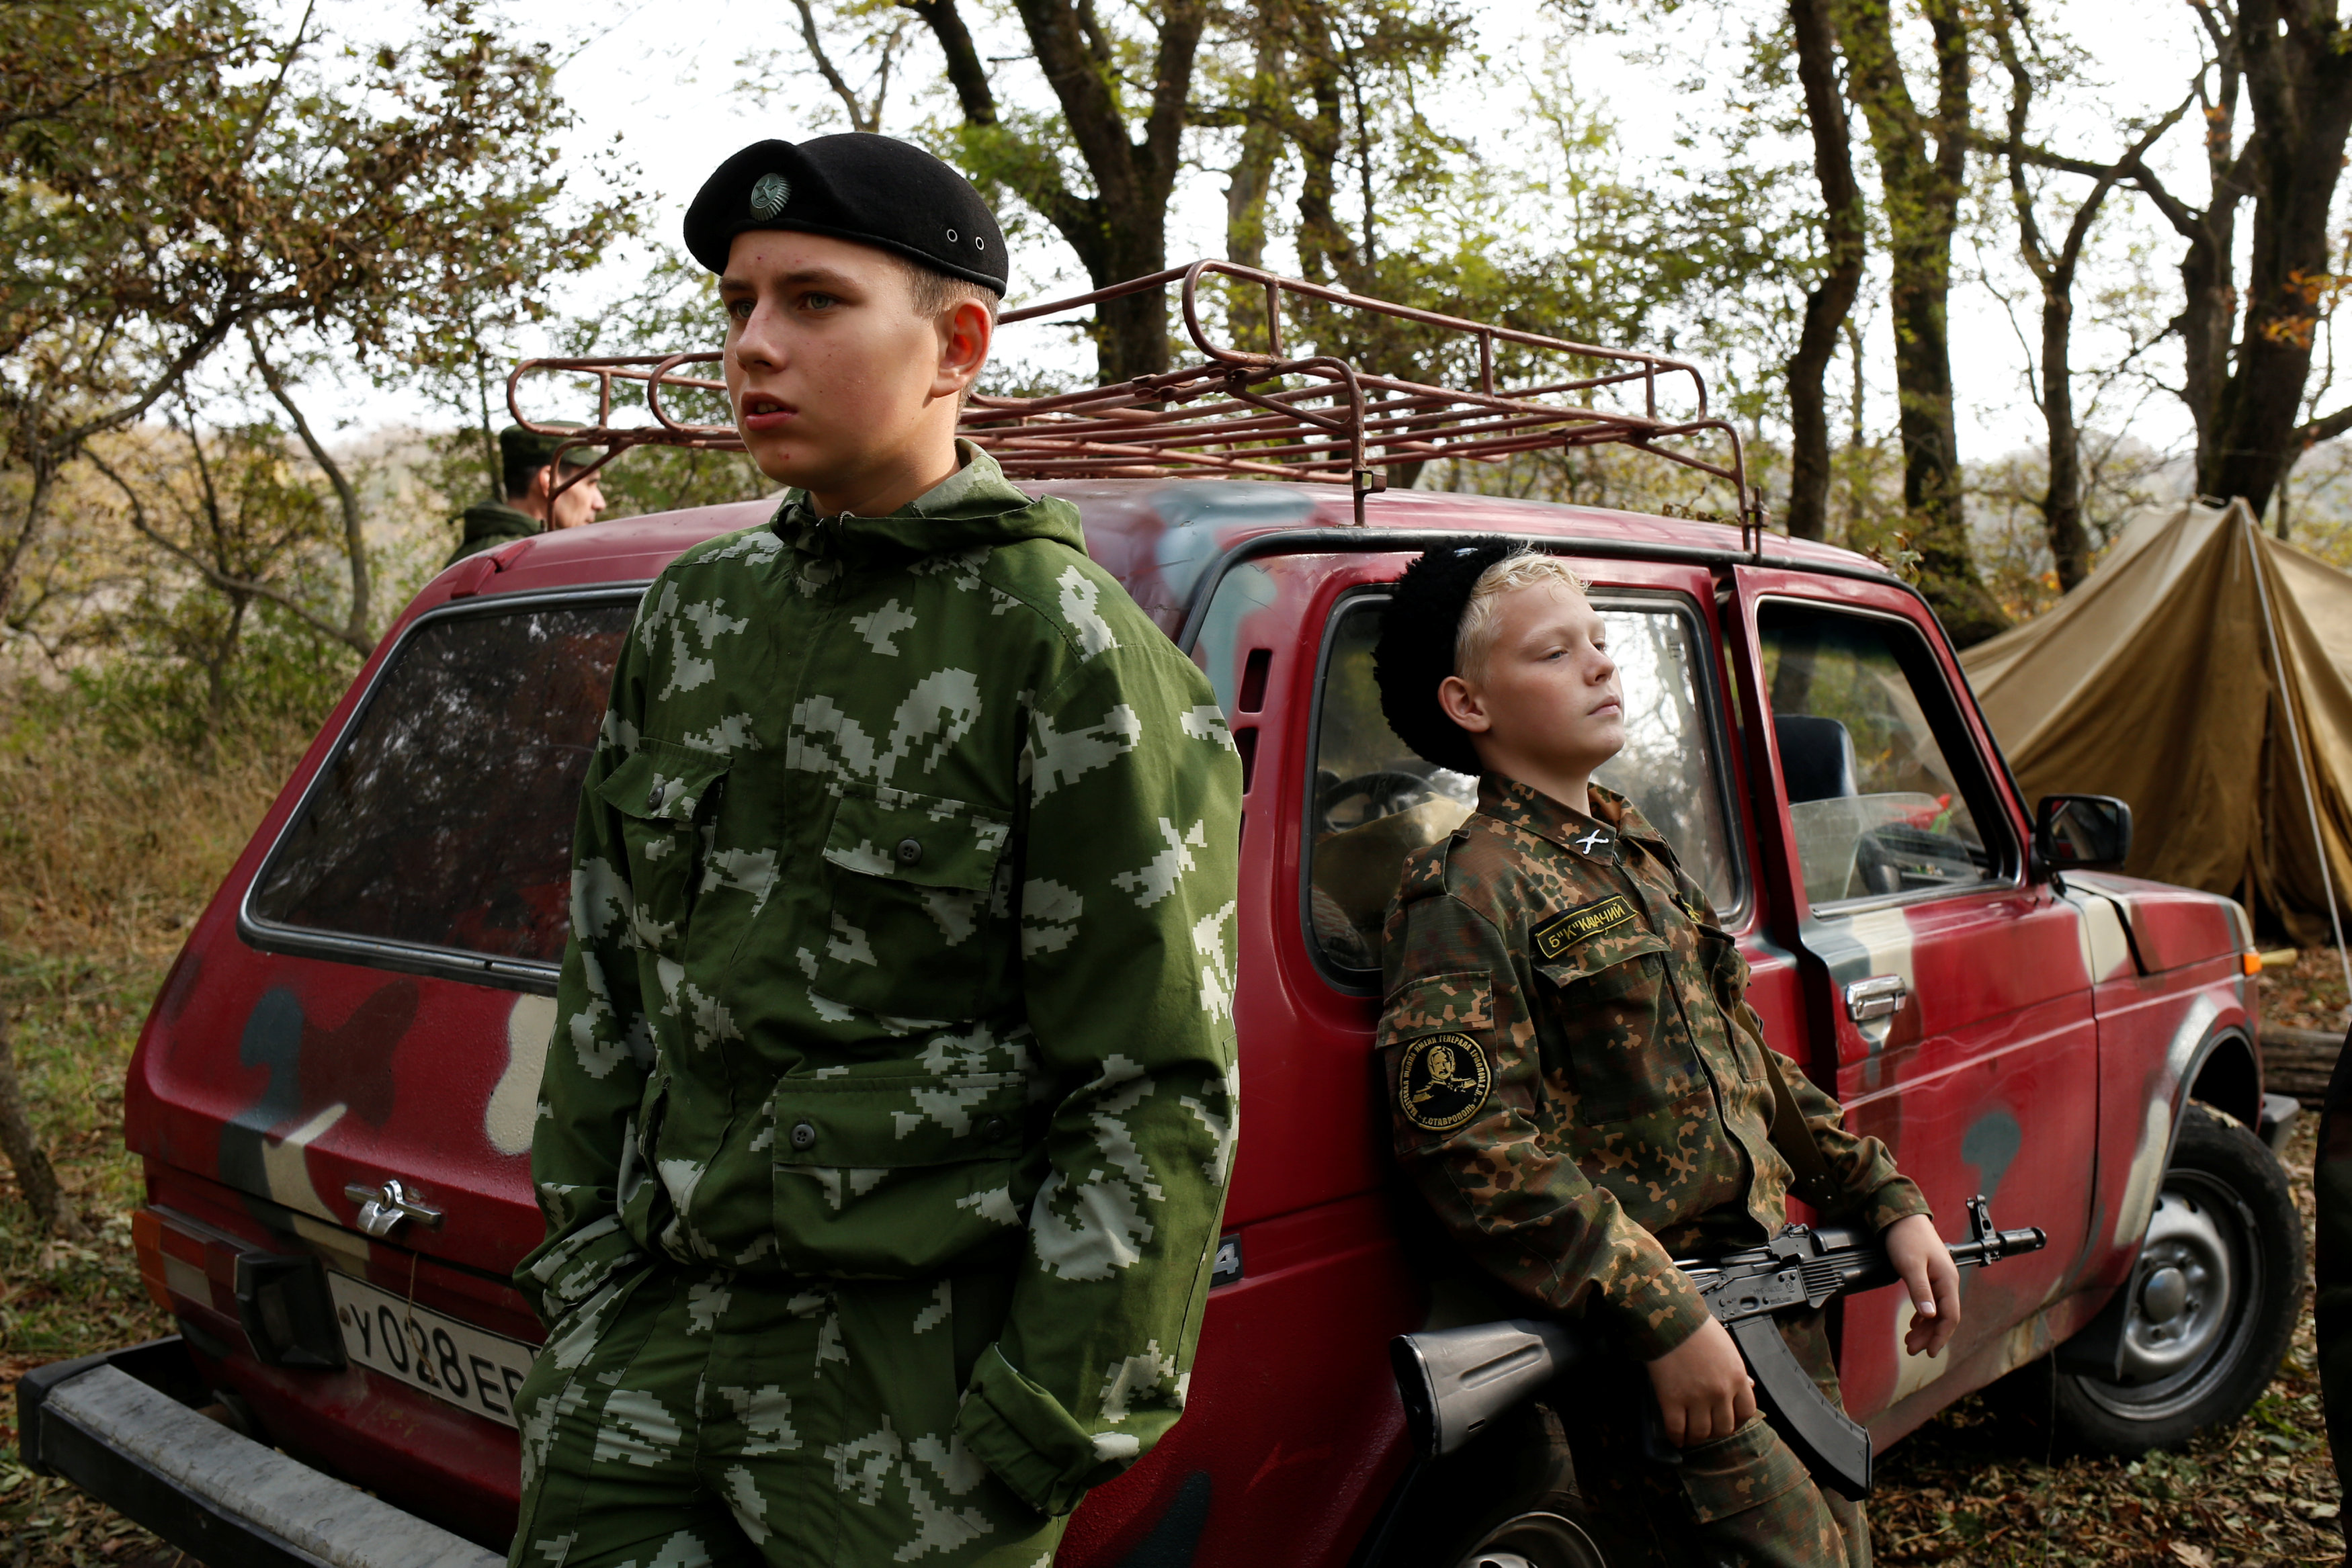 As West frowns on Putin, young Russians learn the military way